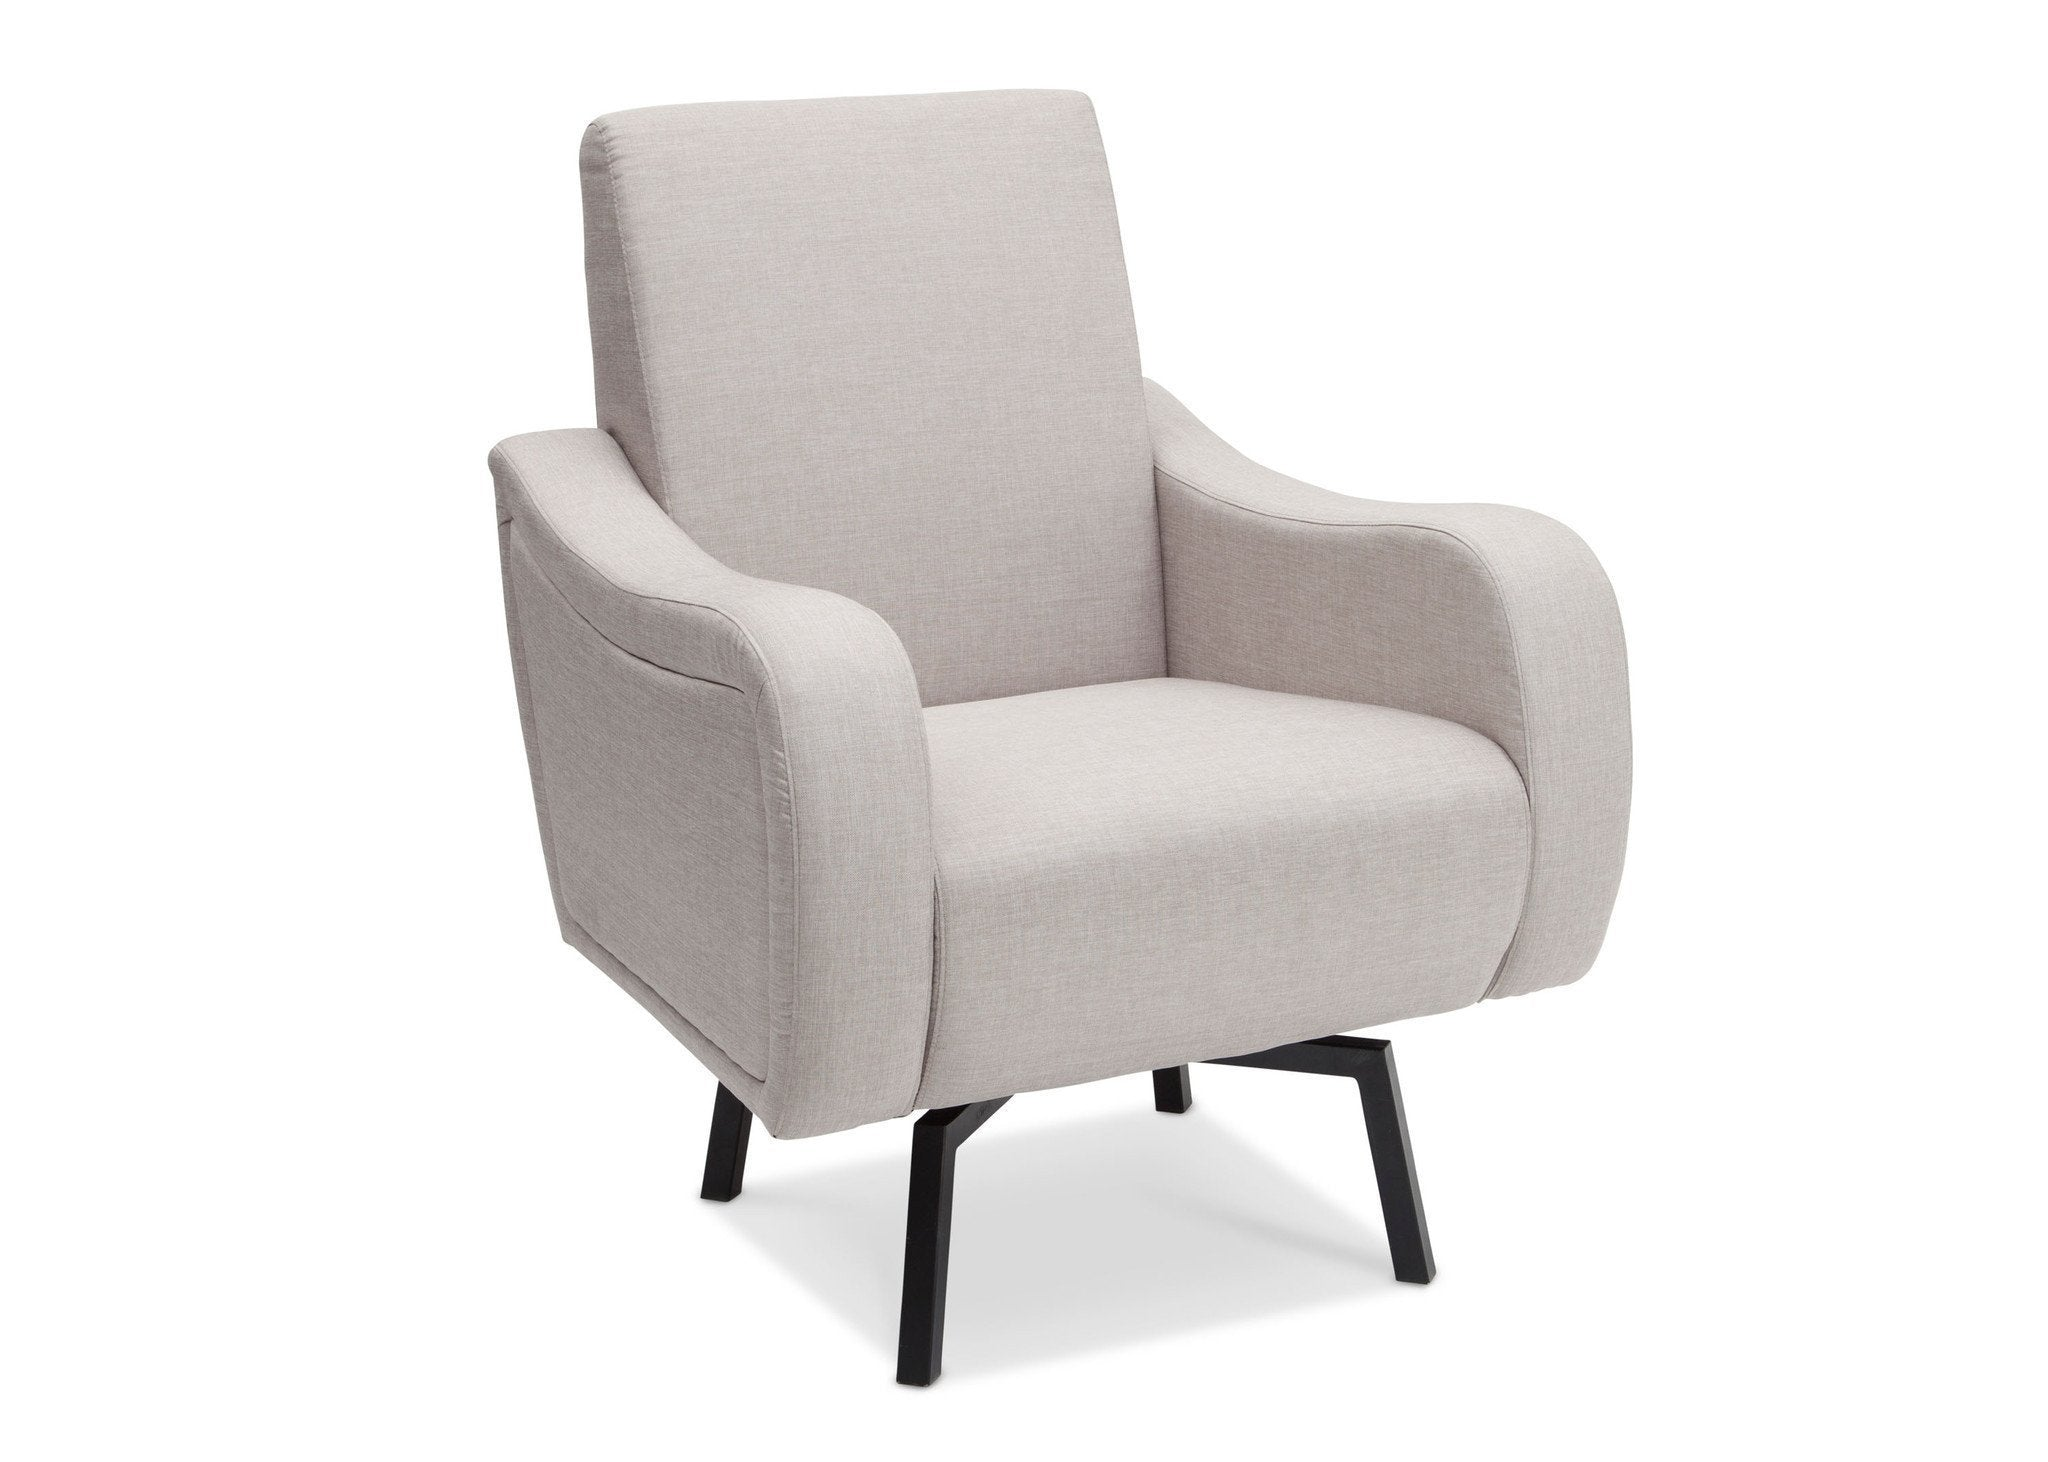 Delta Children Cool Grey (063) Lux Swivel Chair (51210) Side View